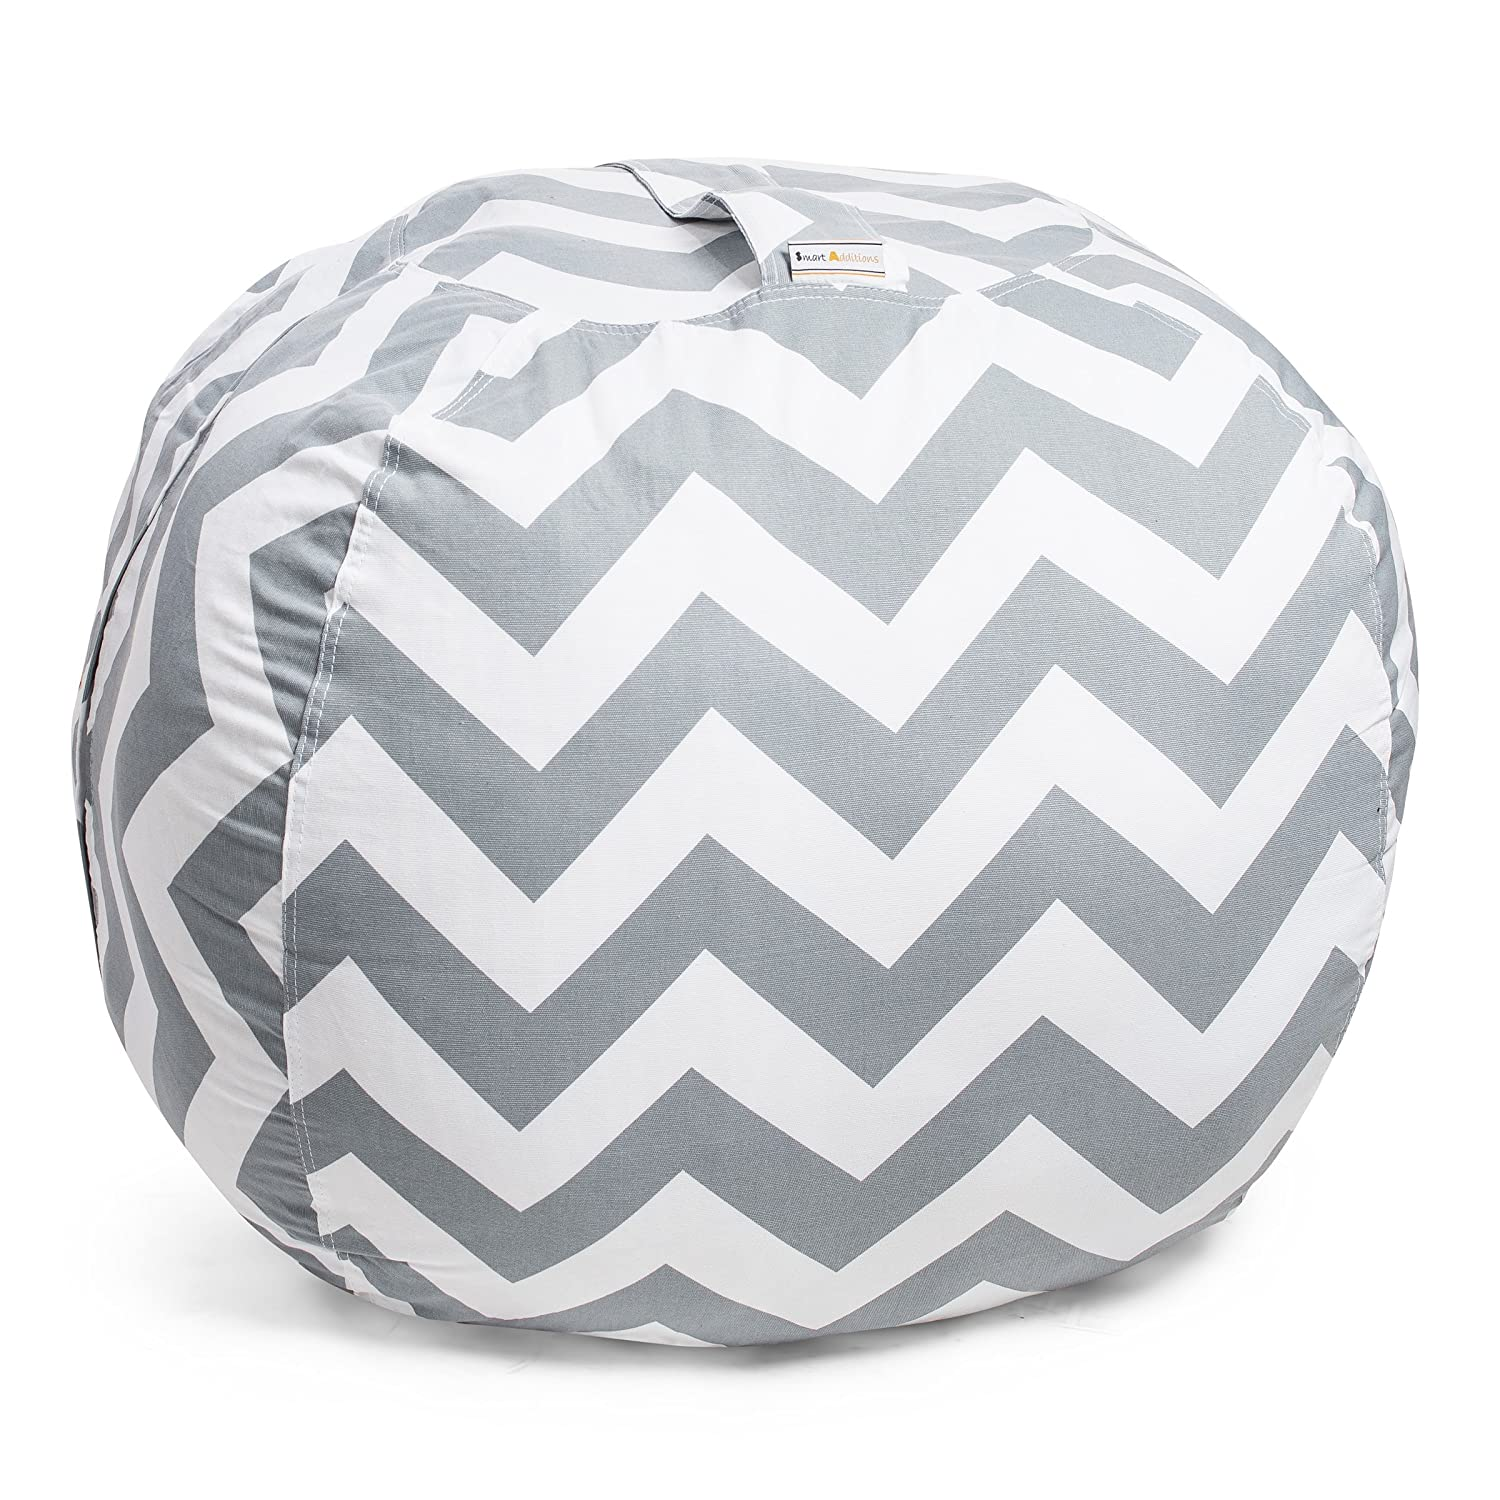 Smart Additions Bean Bag Chair - Bean Bag for Stuffed Animal Storage, Stuff and Sit Bean Bag Cover for Kids, Toy Storage Bean Bag Chair, Bright Color Zigzag Bean Bag Toy Organizer, Gray - Extra Large